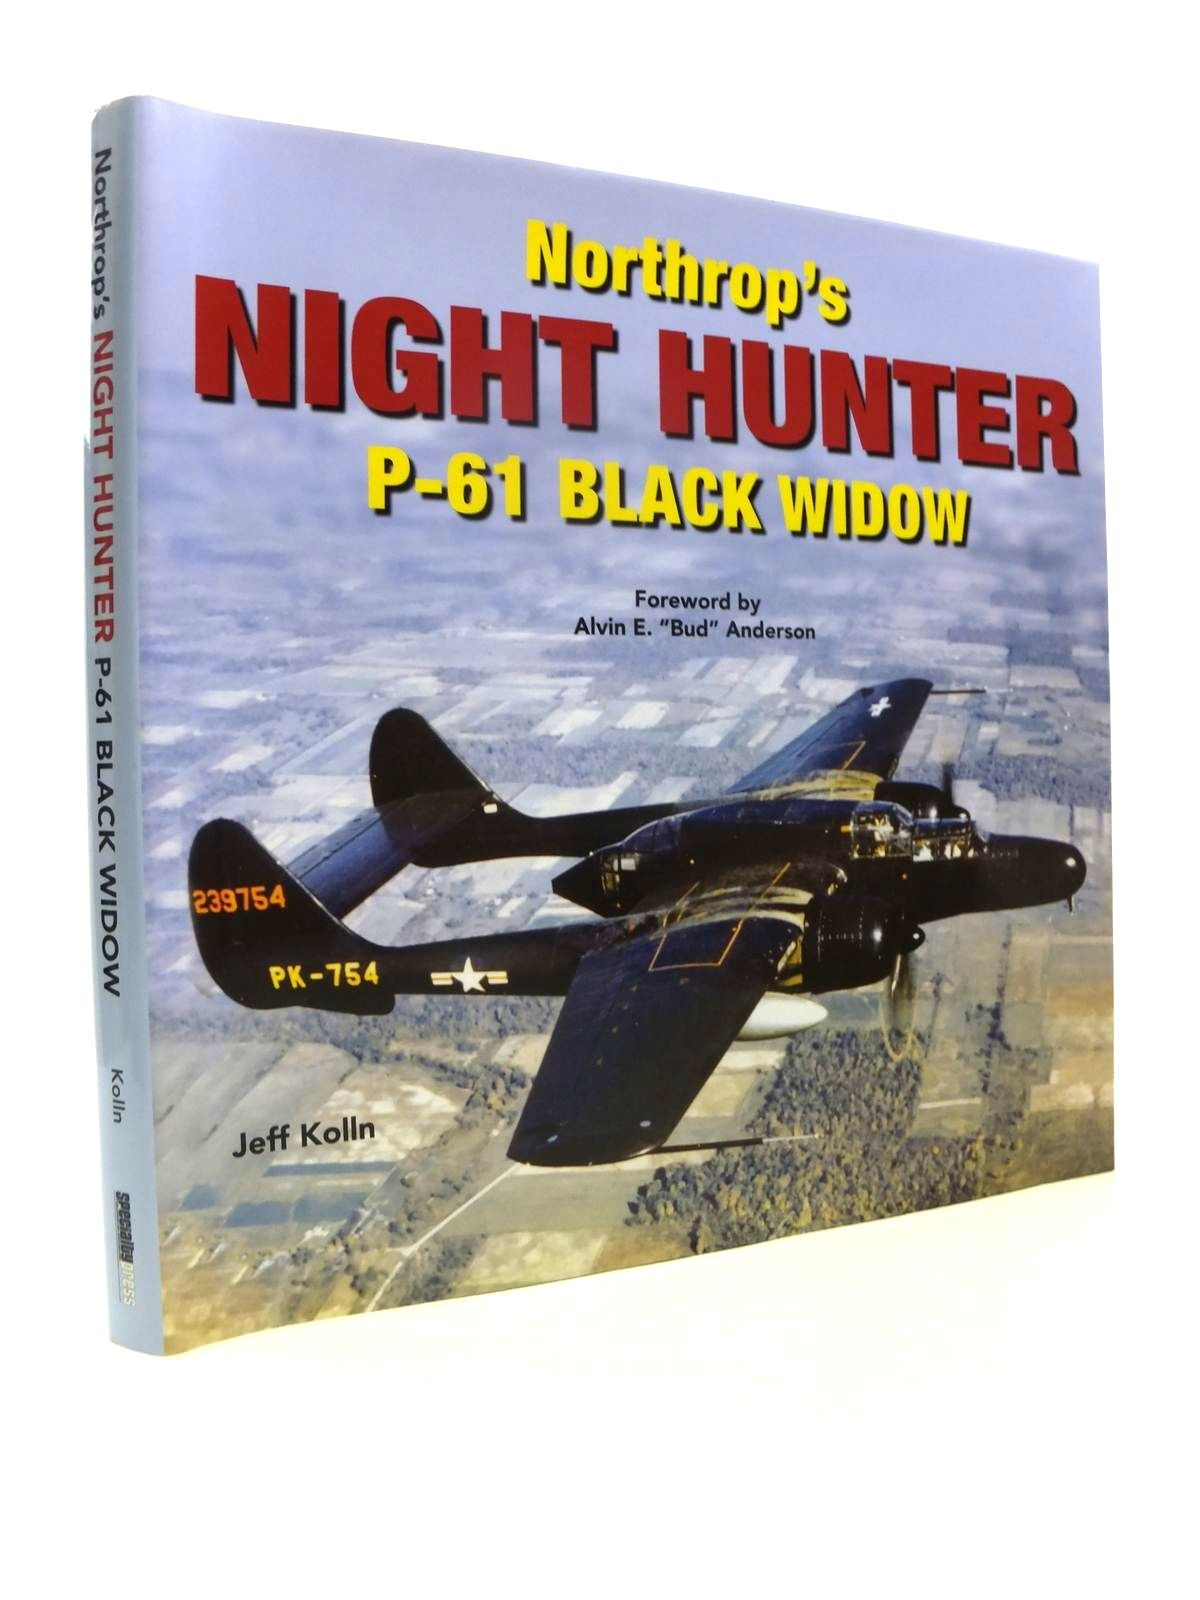 Photo of NORTHROP'S NIGHT HUNGER P-61 BLACK WIDOW- Stock Number: 1812236